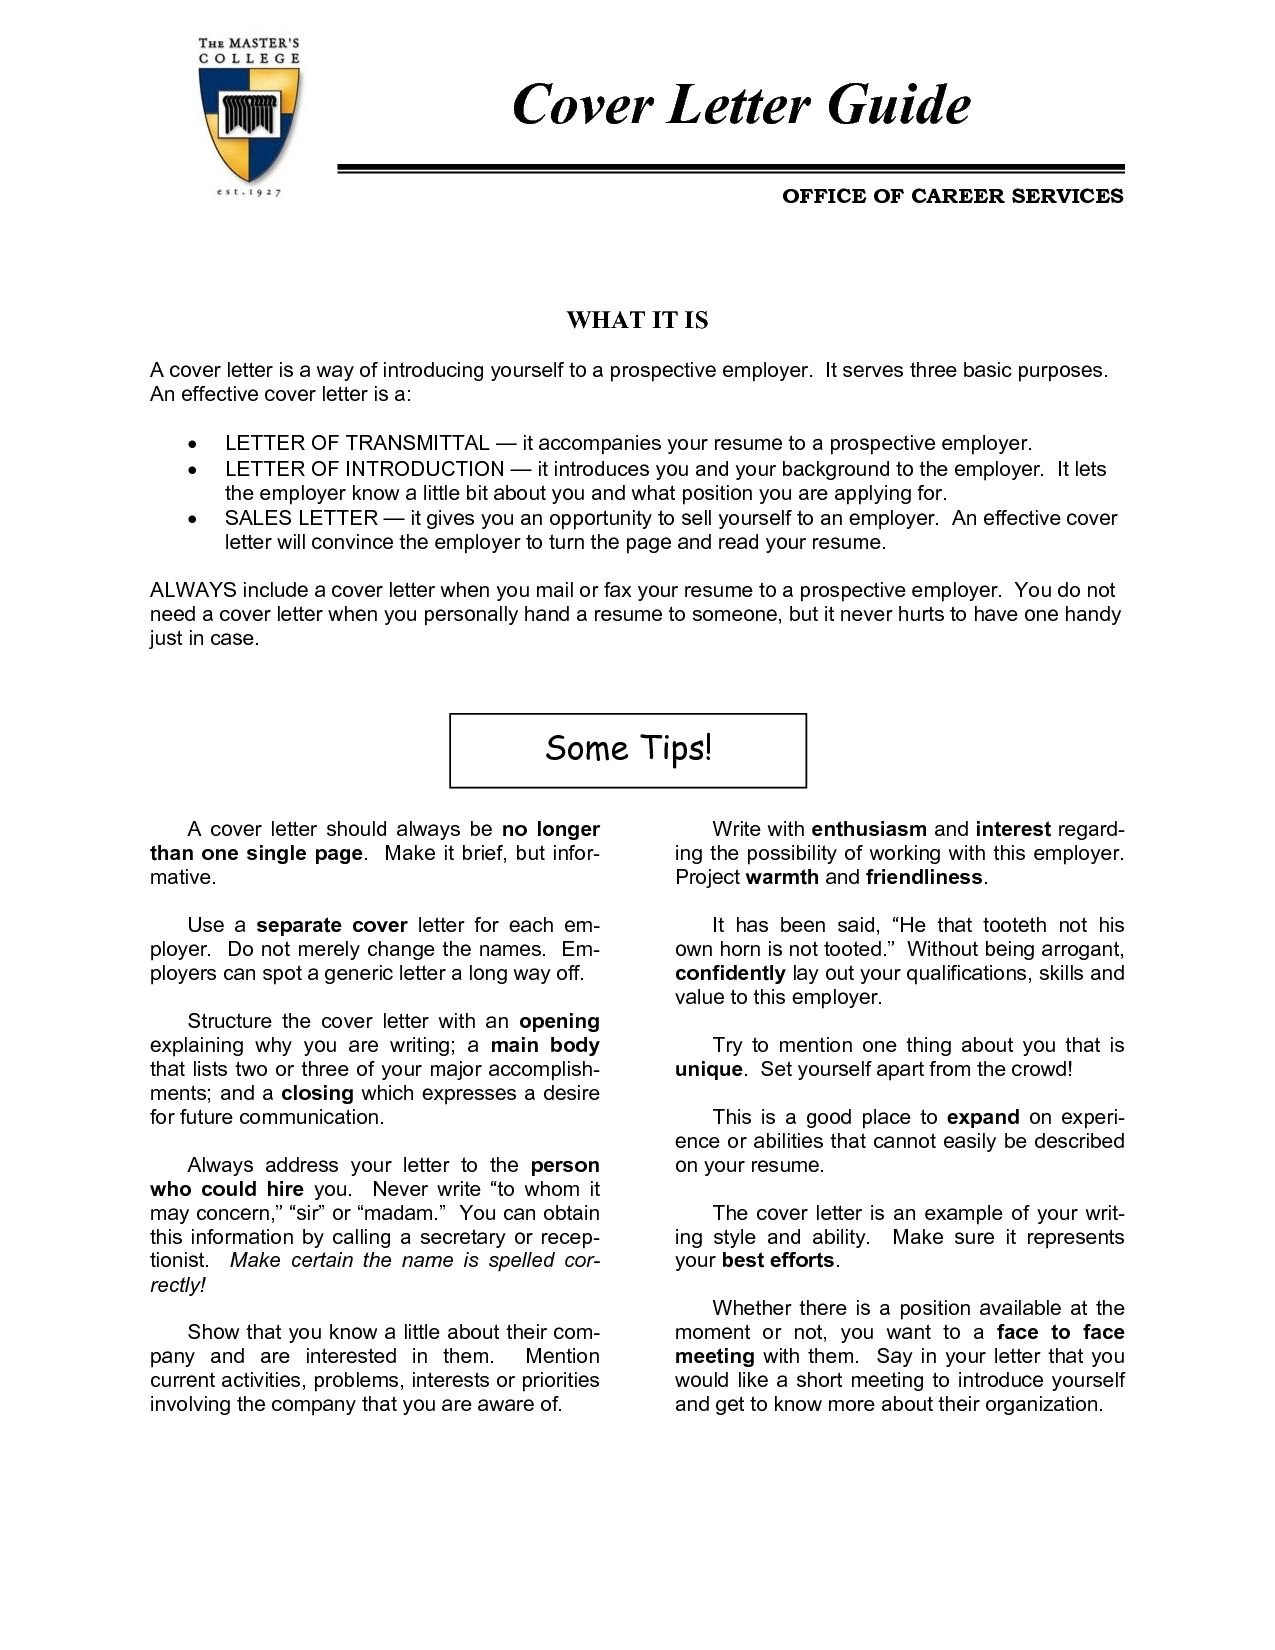 30+ Wonderful How To Write A Career Change Cover Letter  You Should Try